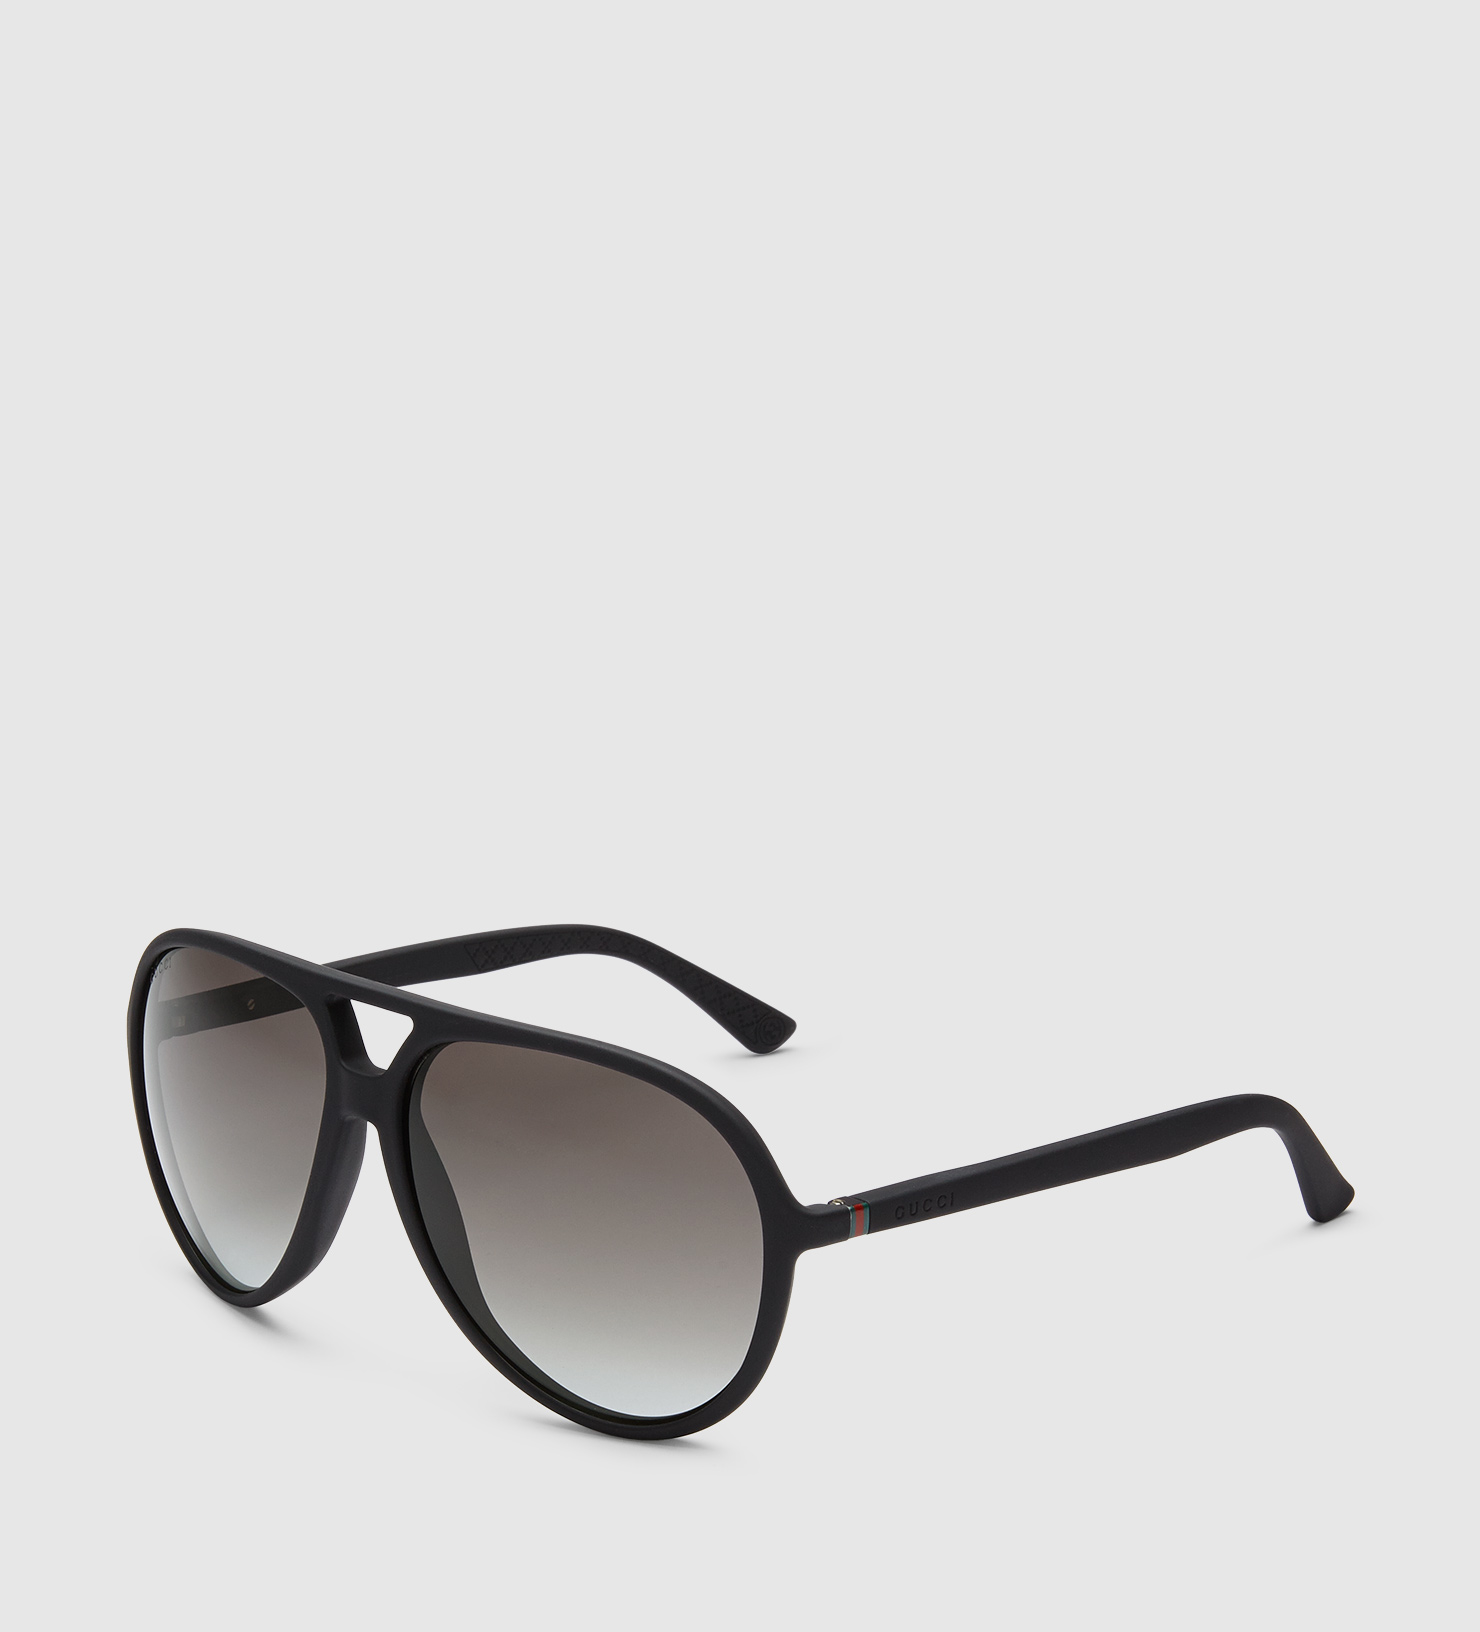 gucci aviator sunglasses. gallery gucci aviator sunglasses